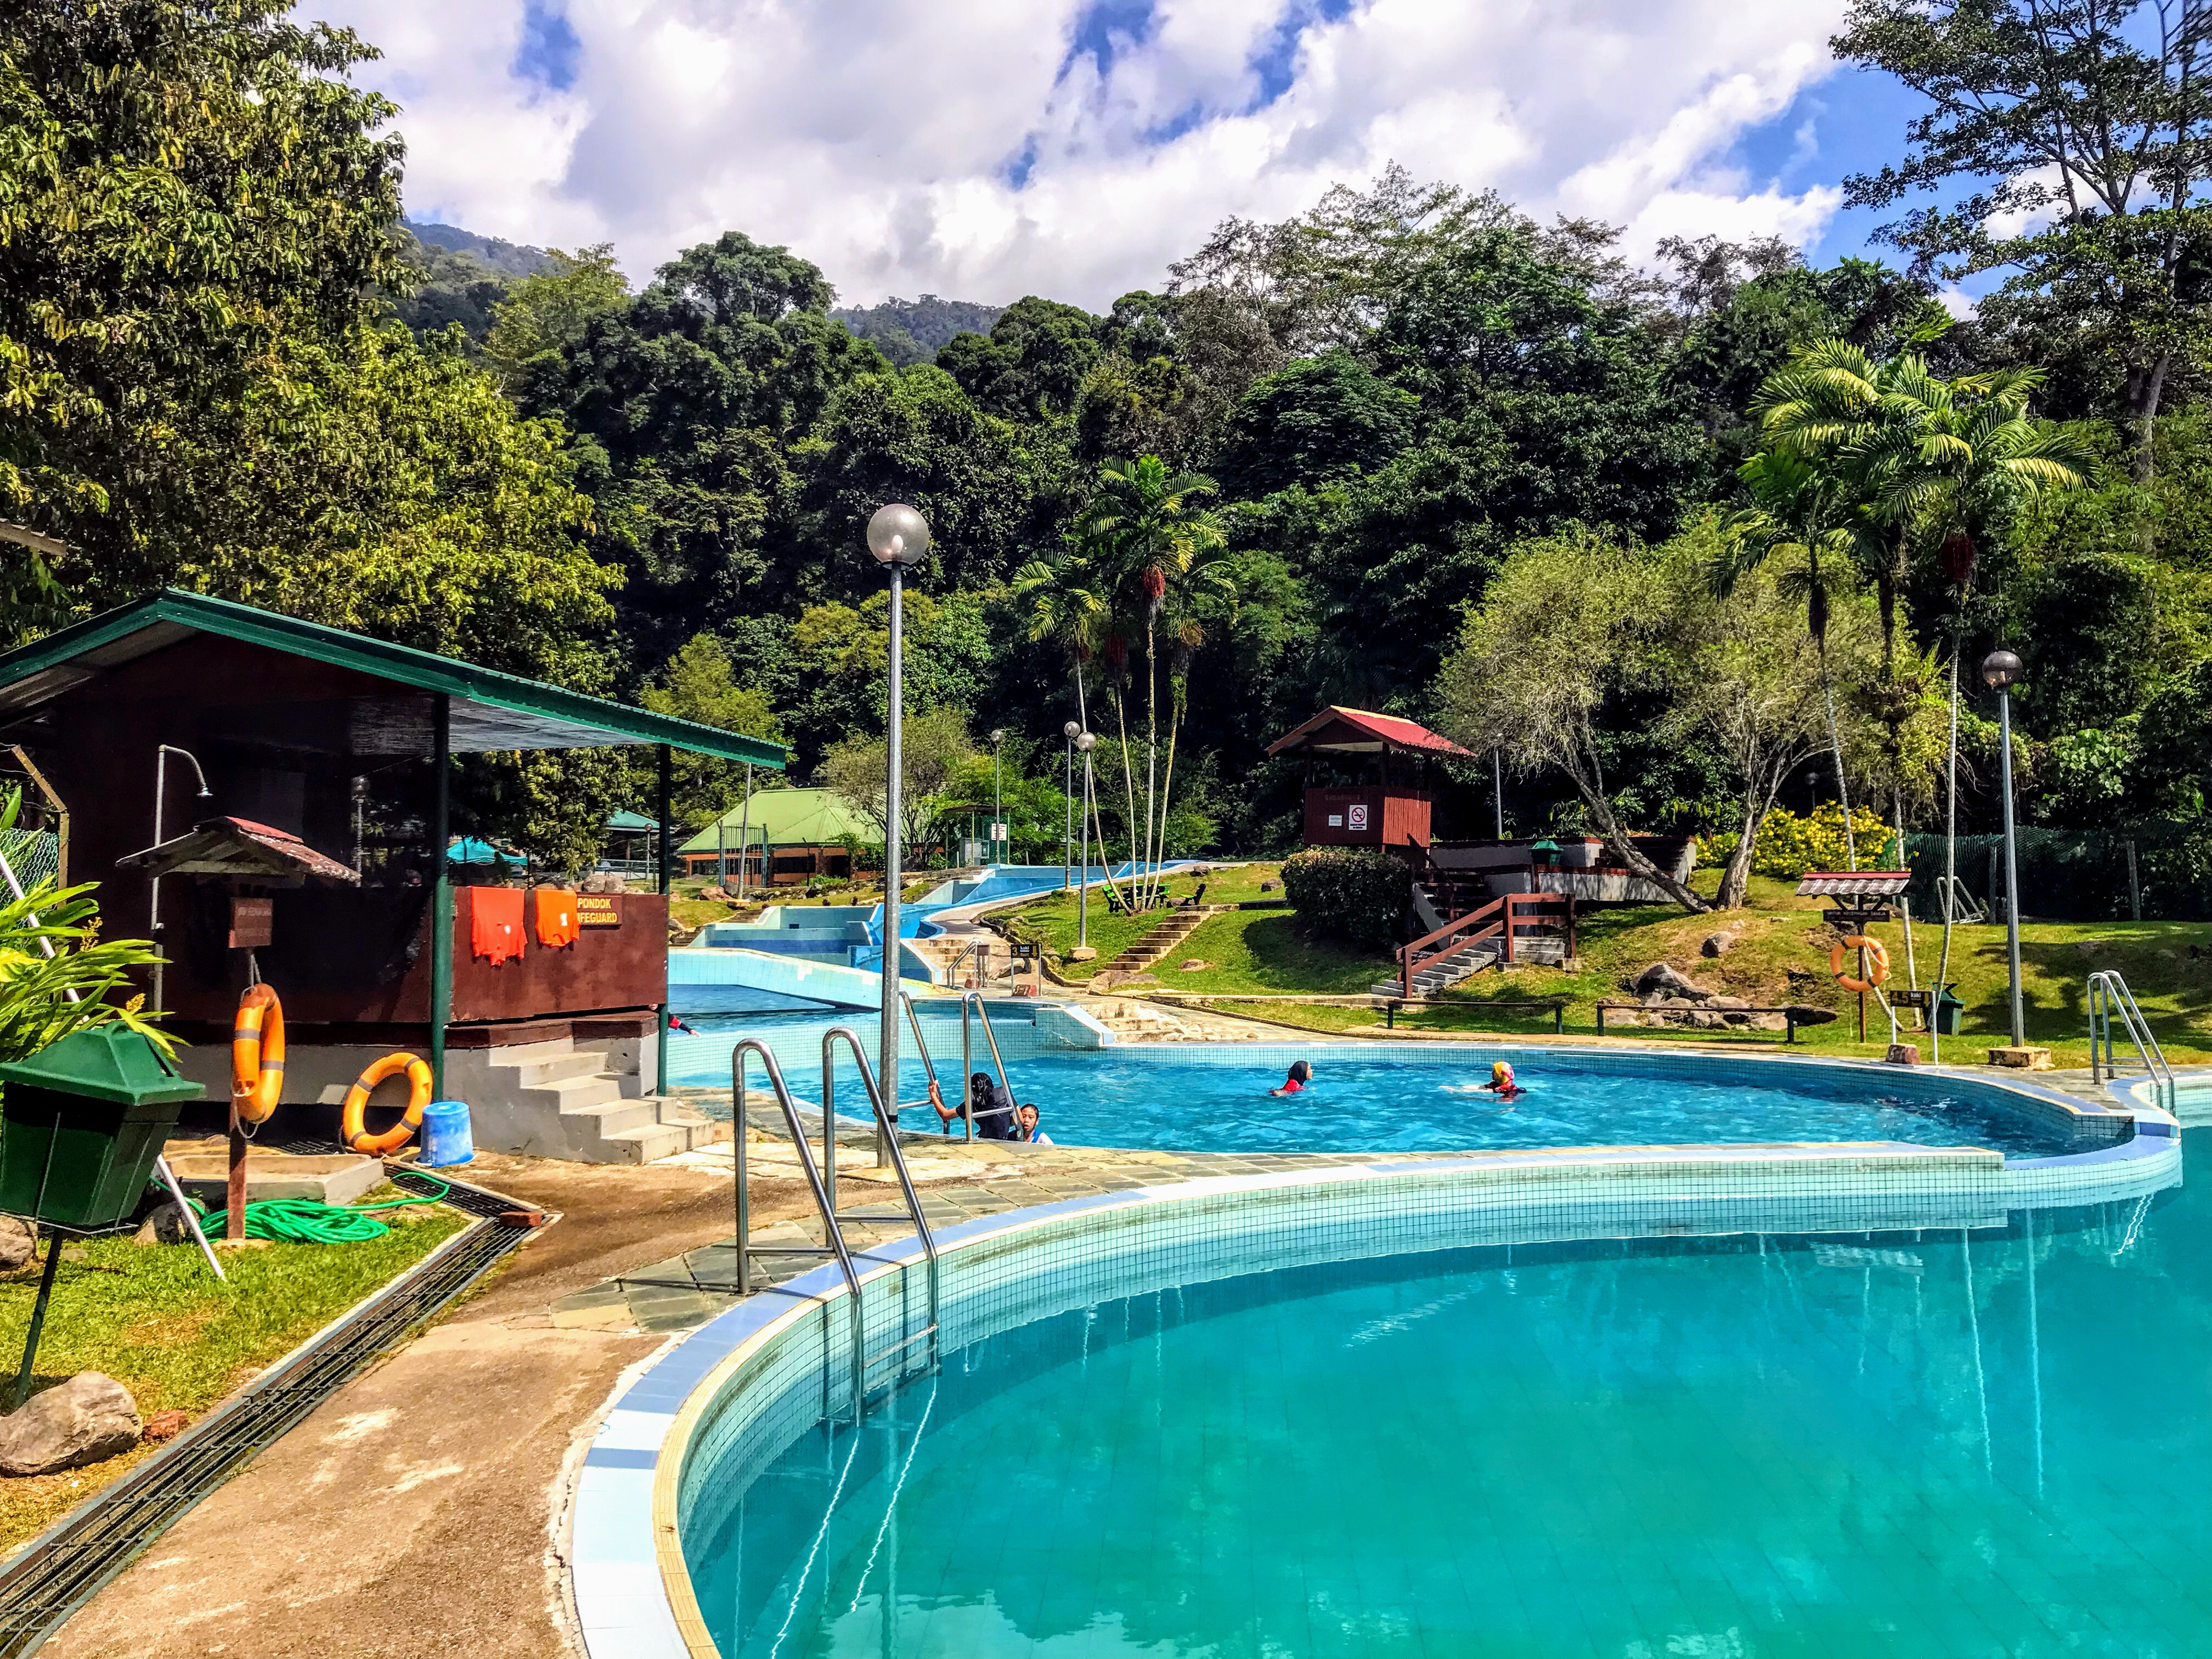 Swimming pool at Poring Hot Springs, Borneo, Malaysia